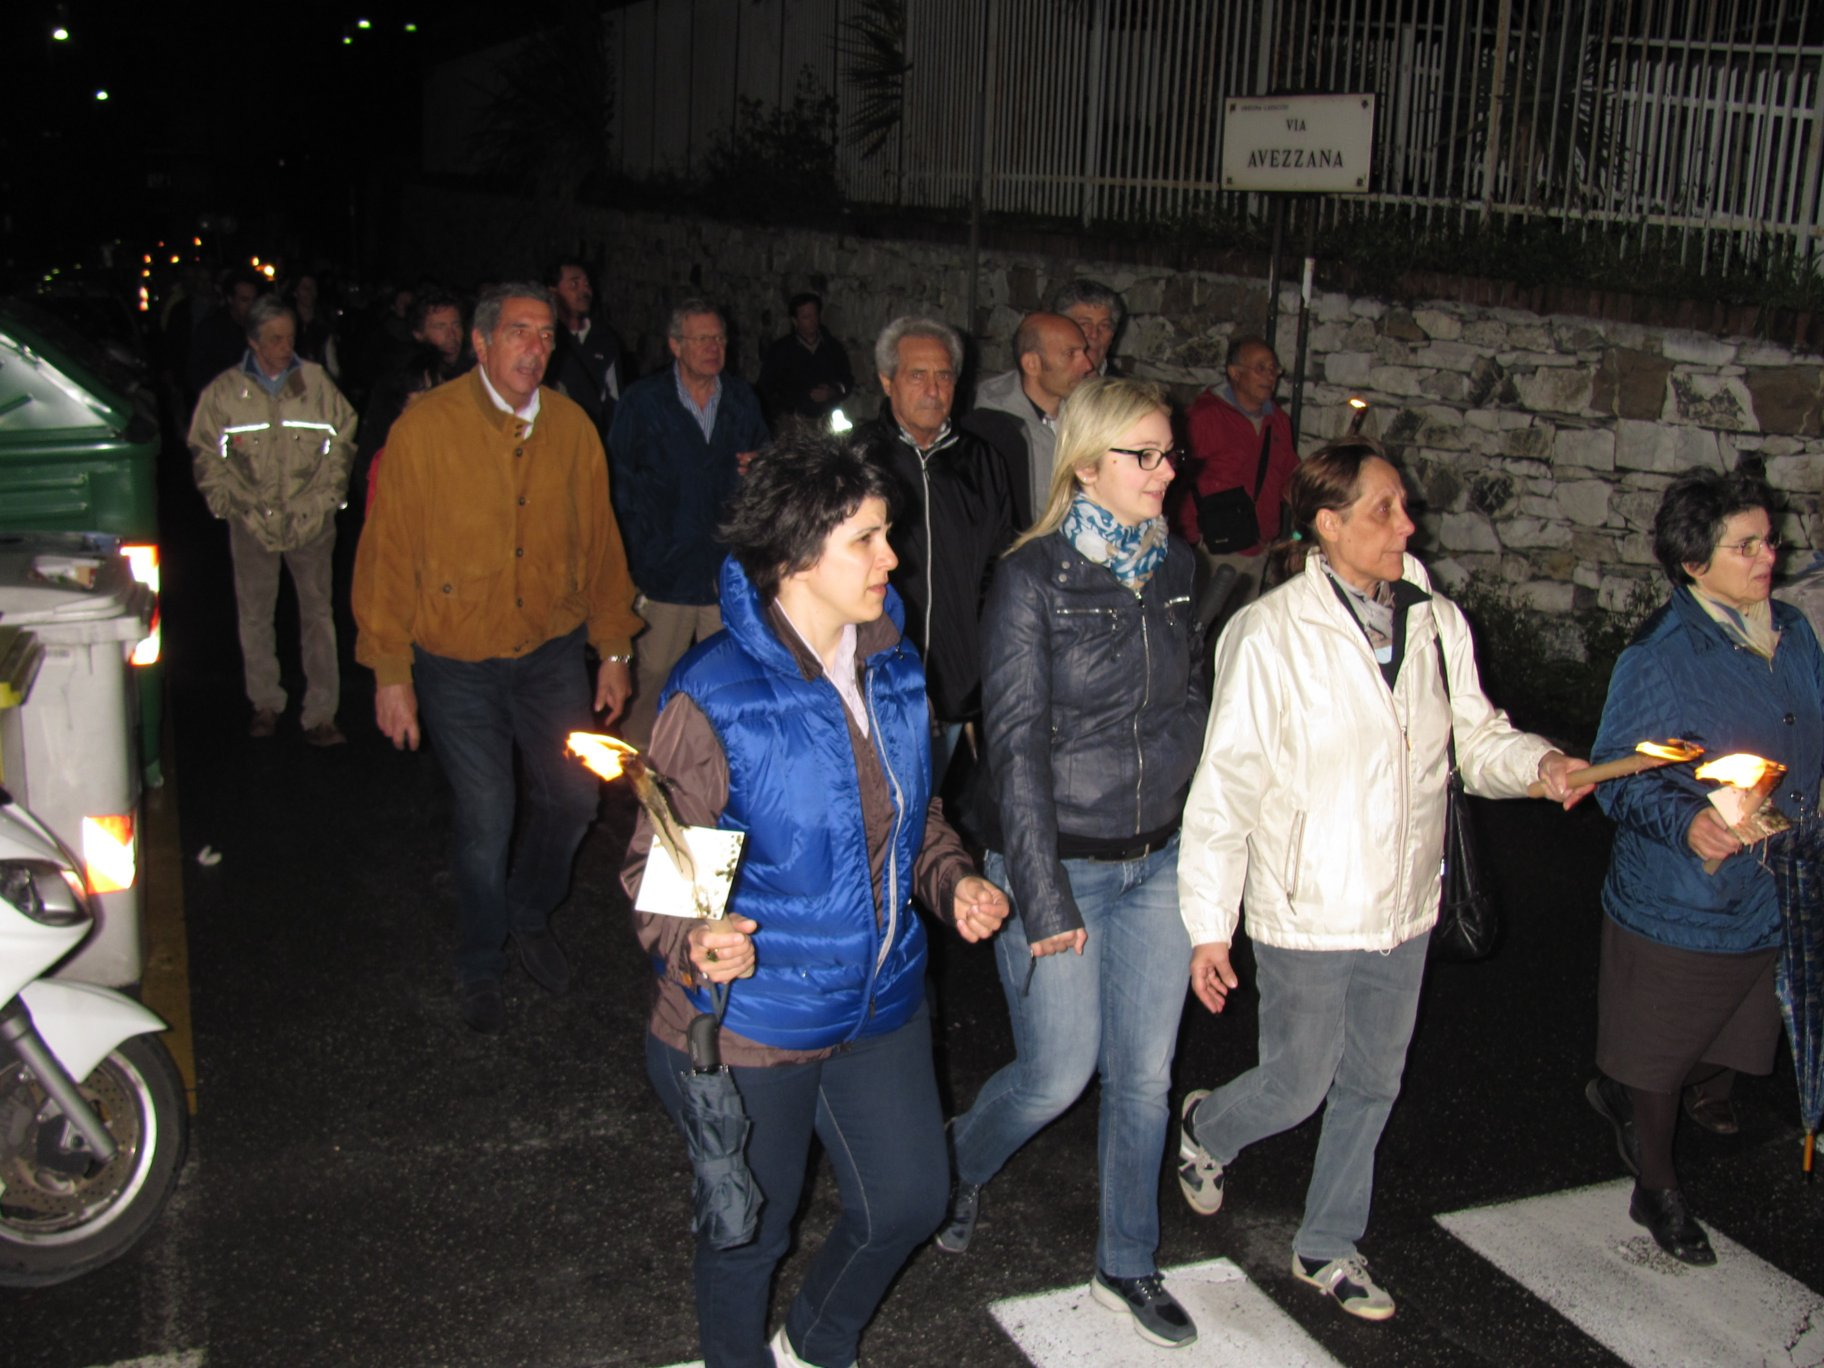 fiaccolata_via_ventotene_2013-05-05-20-14-05